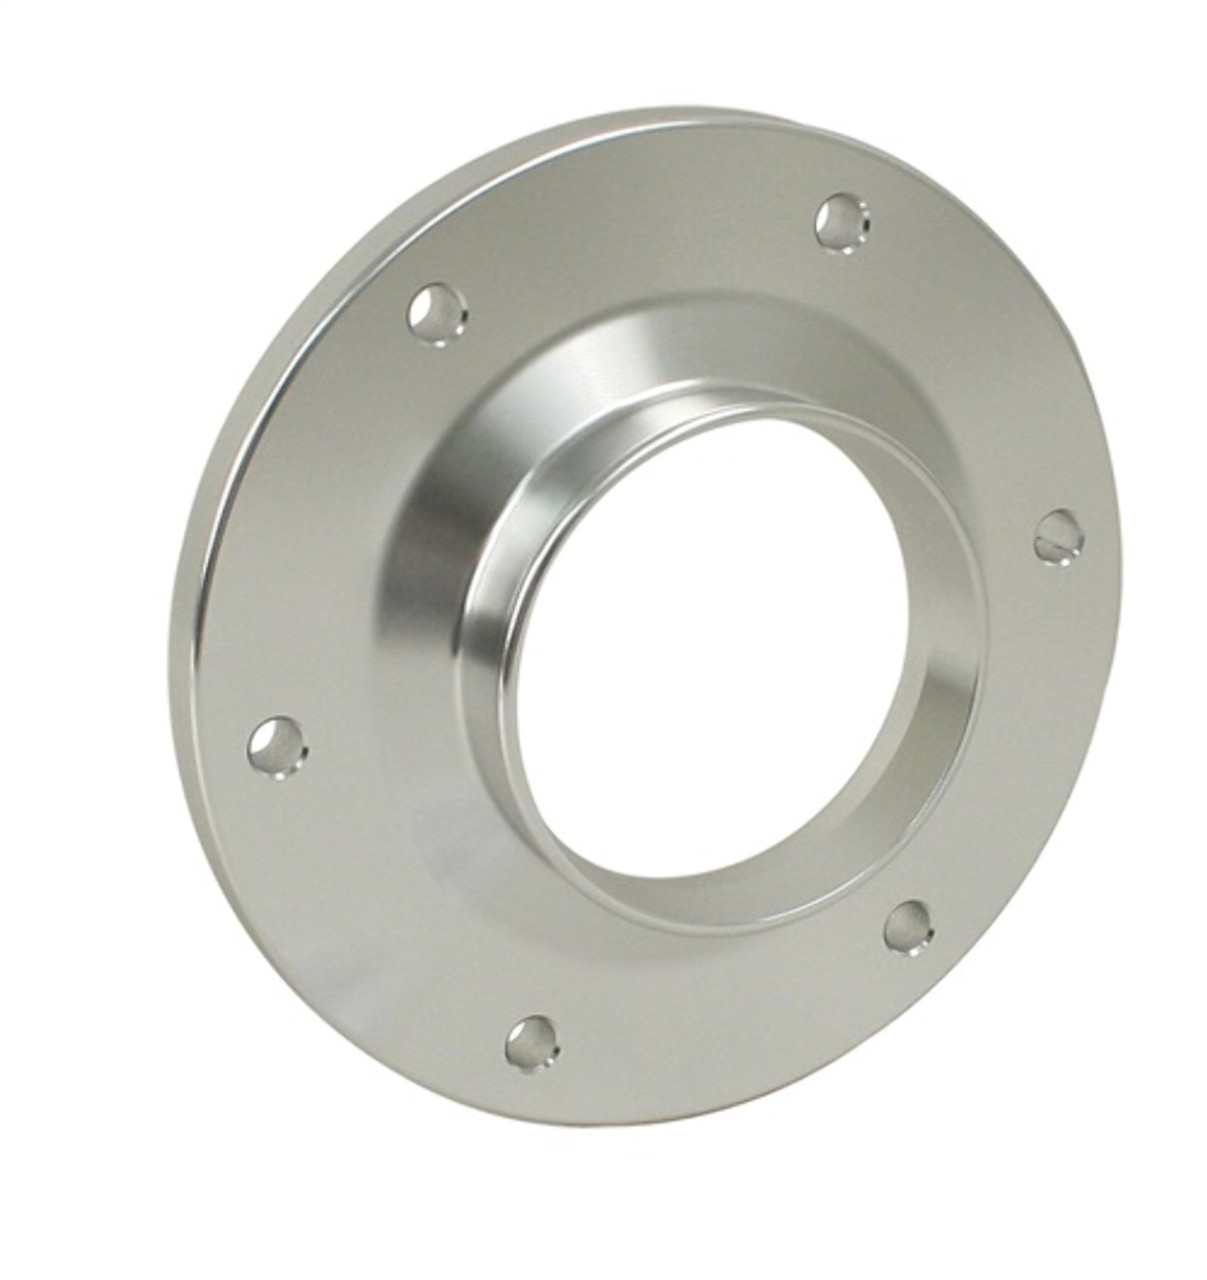 17-2784-0 BILLET AXLE FLANGE COVER, FOR SWING AXLE TRANS